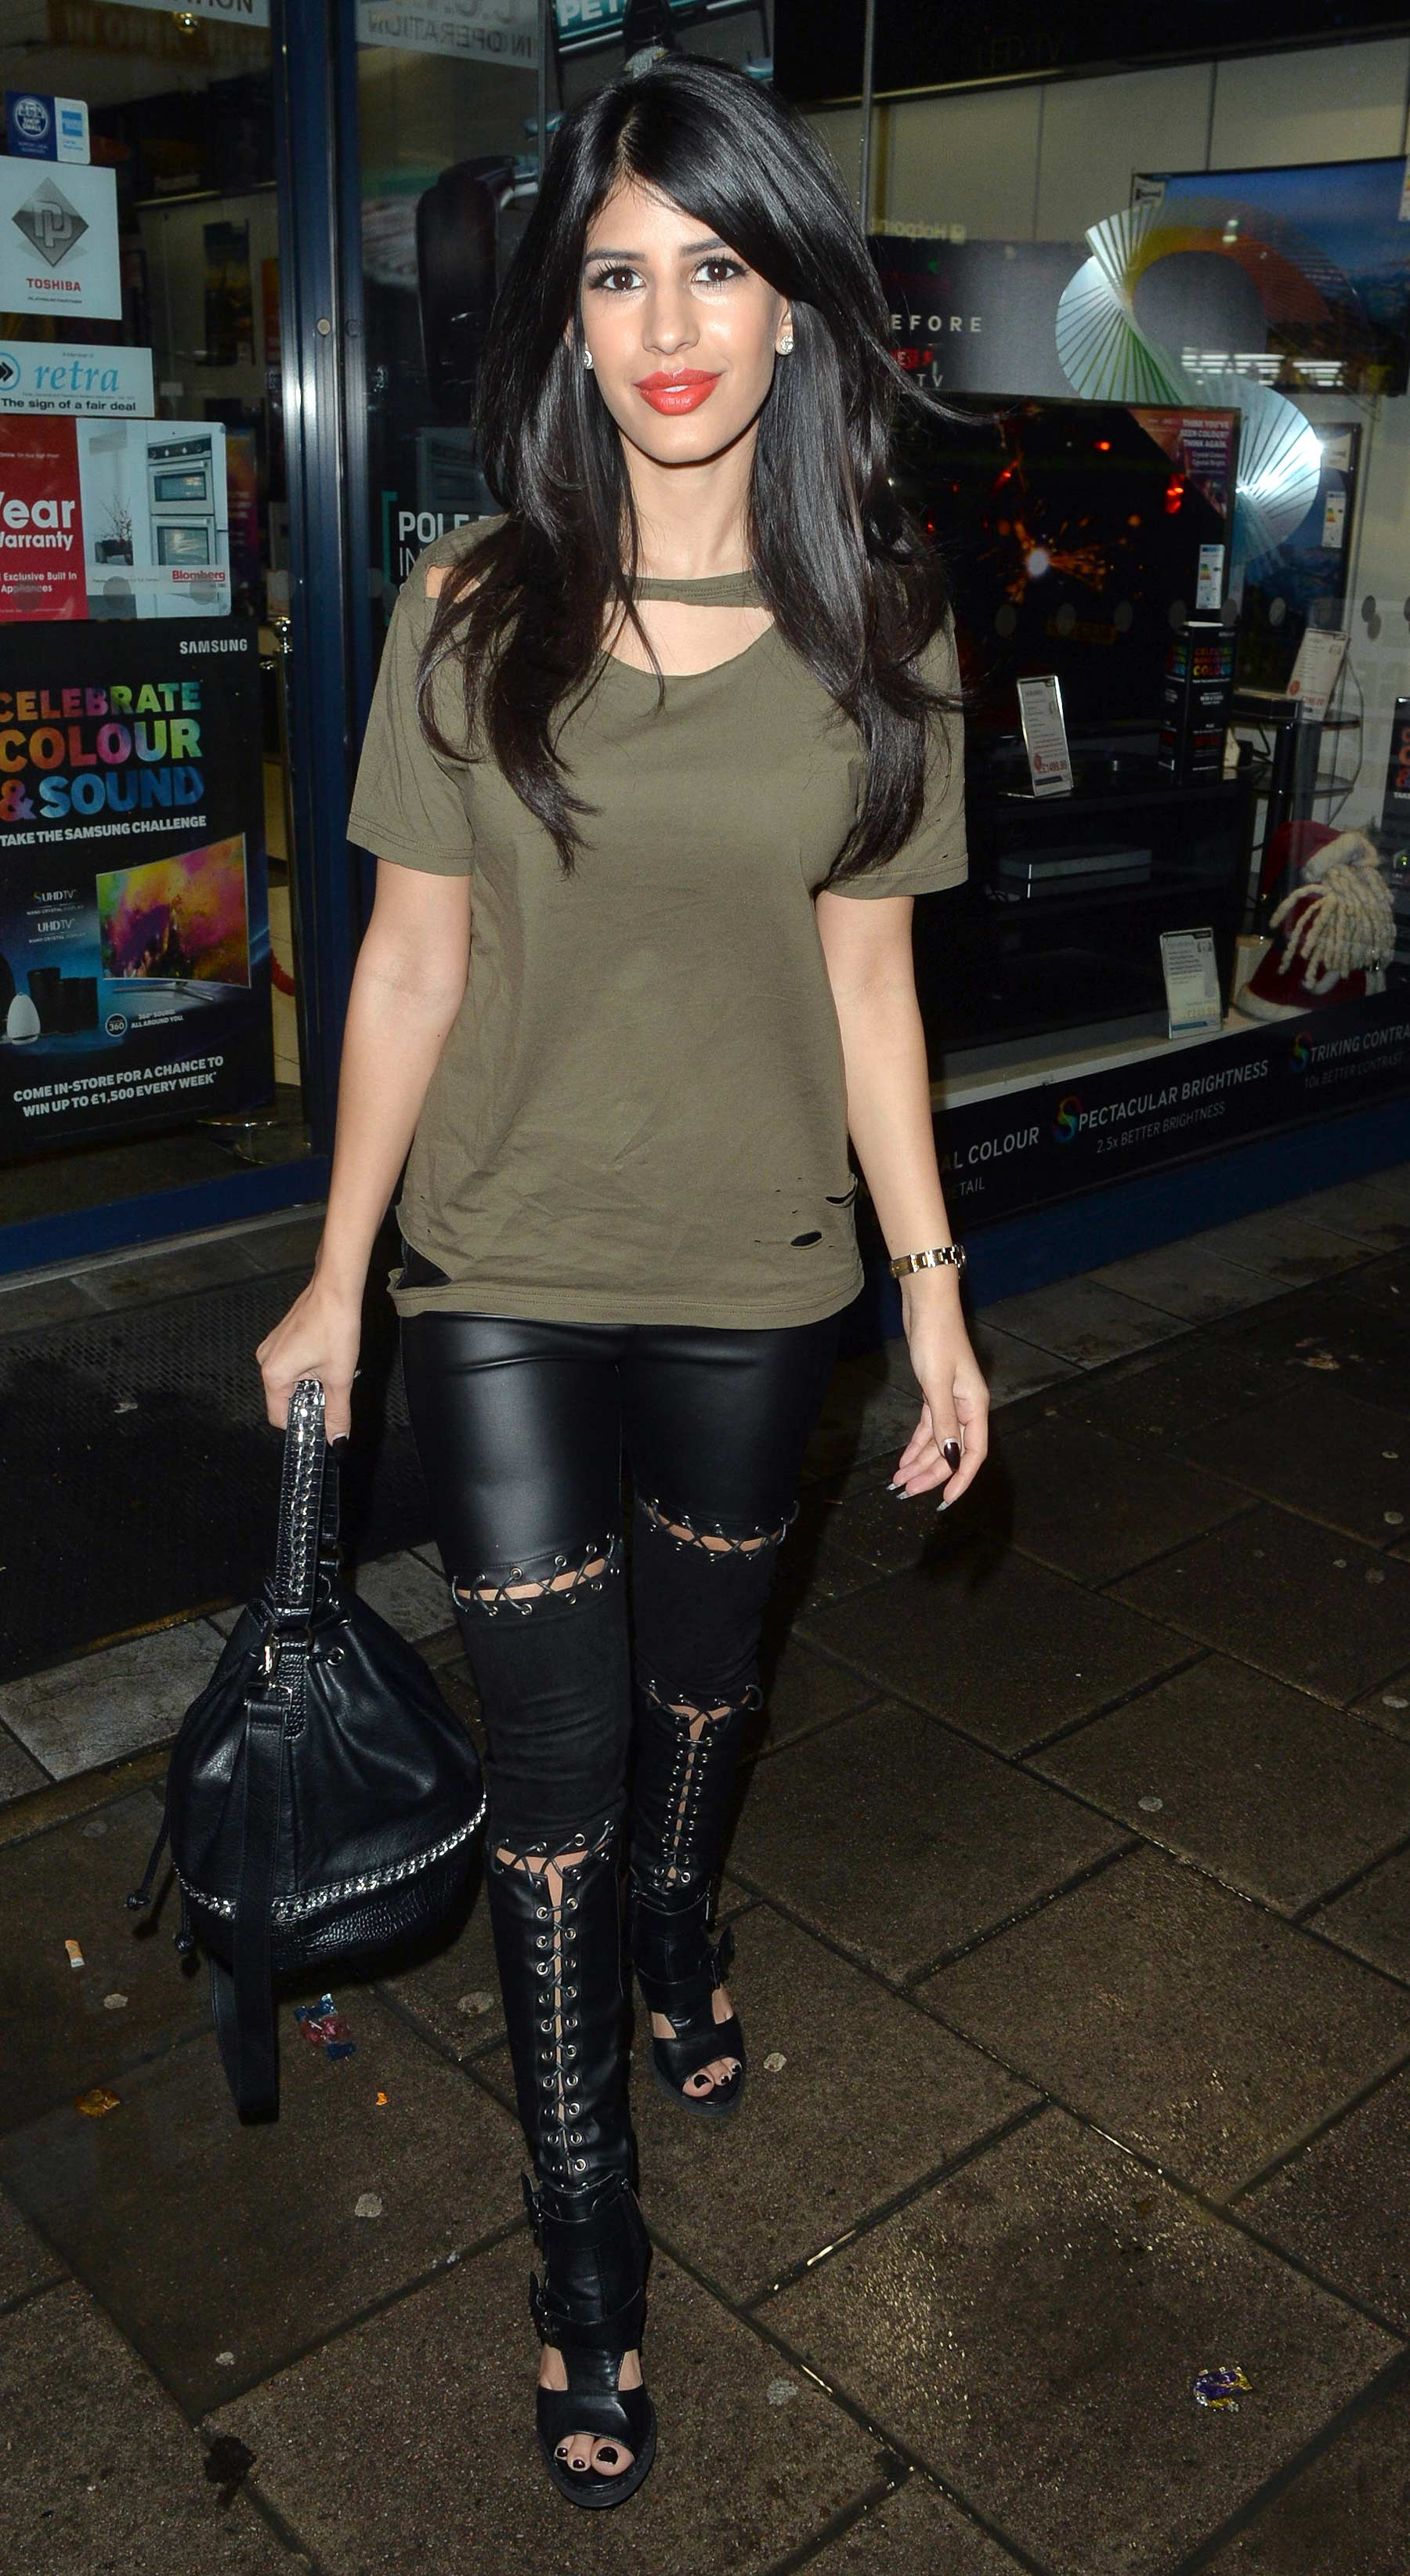 Jasmin Walia out and about in London